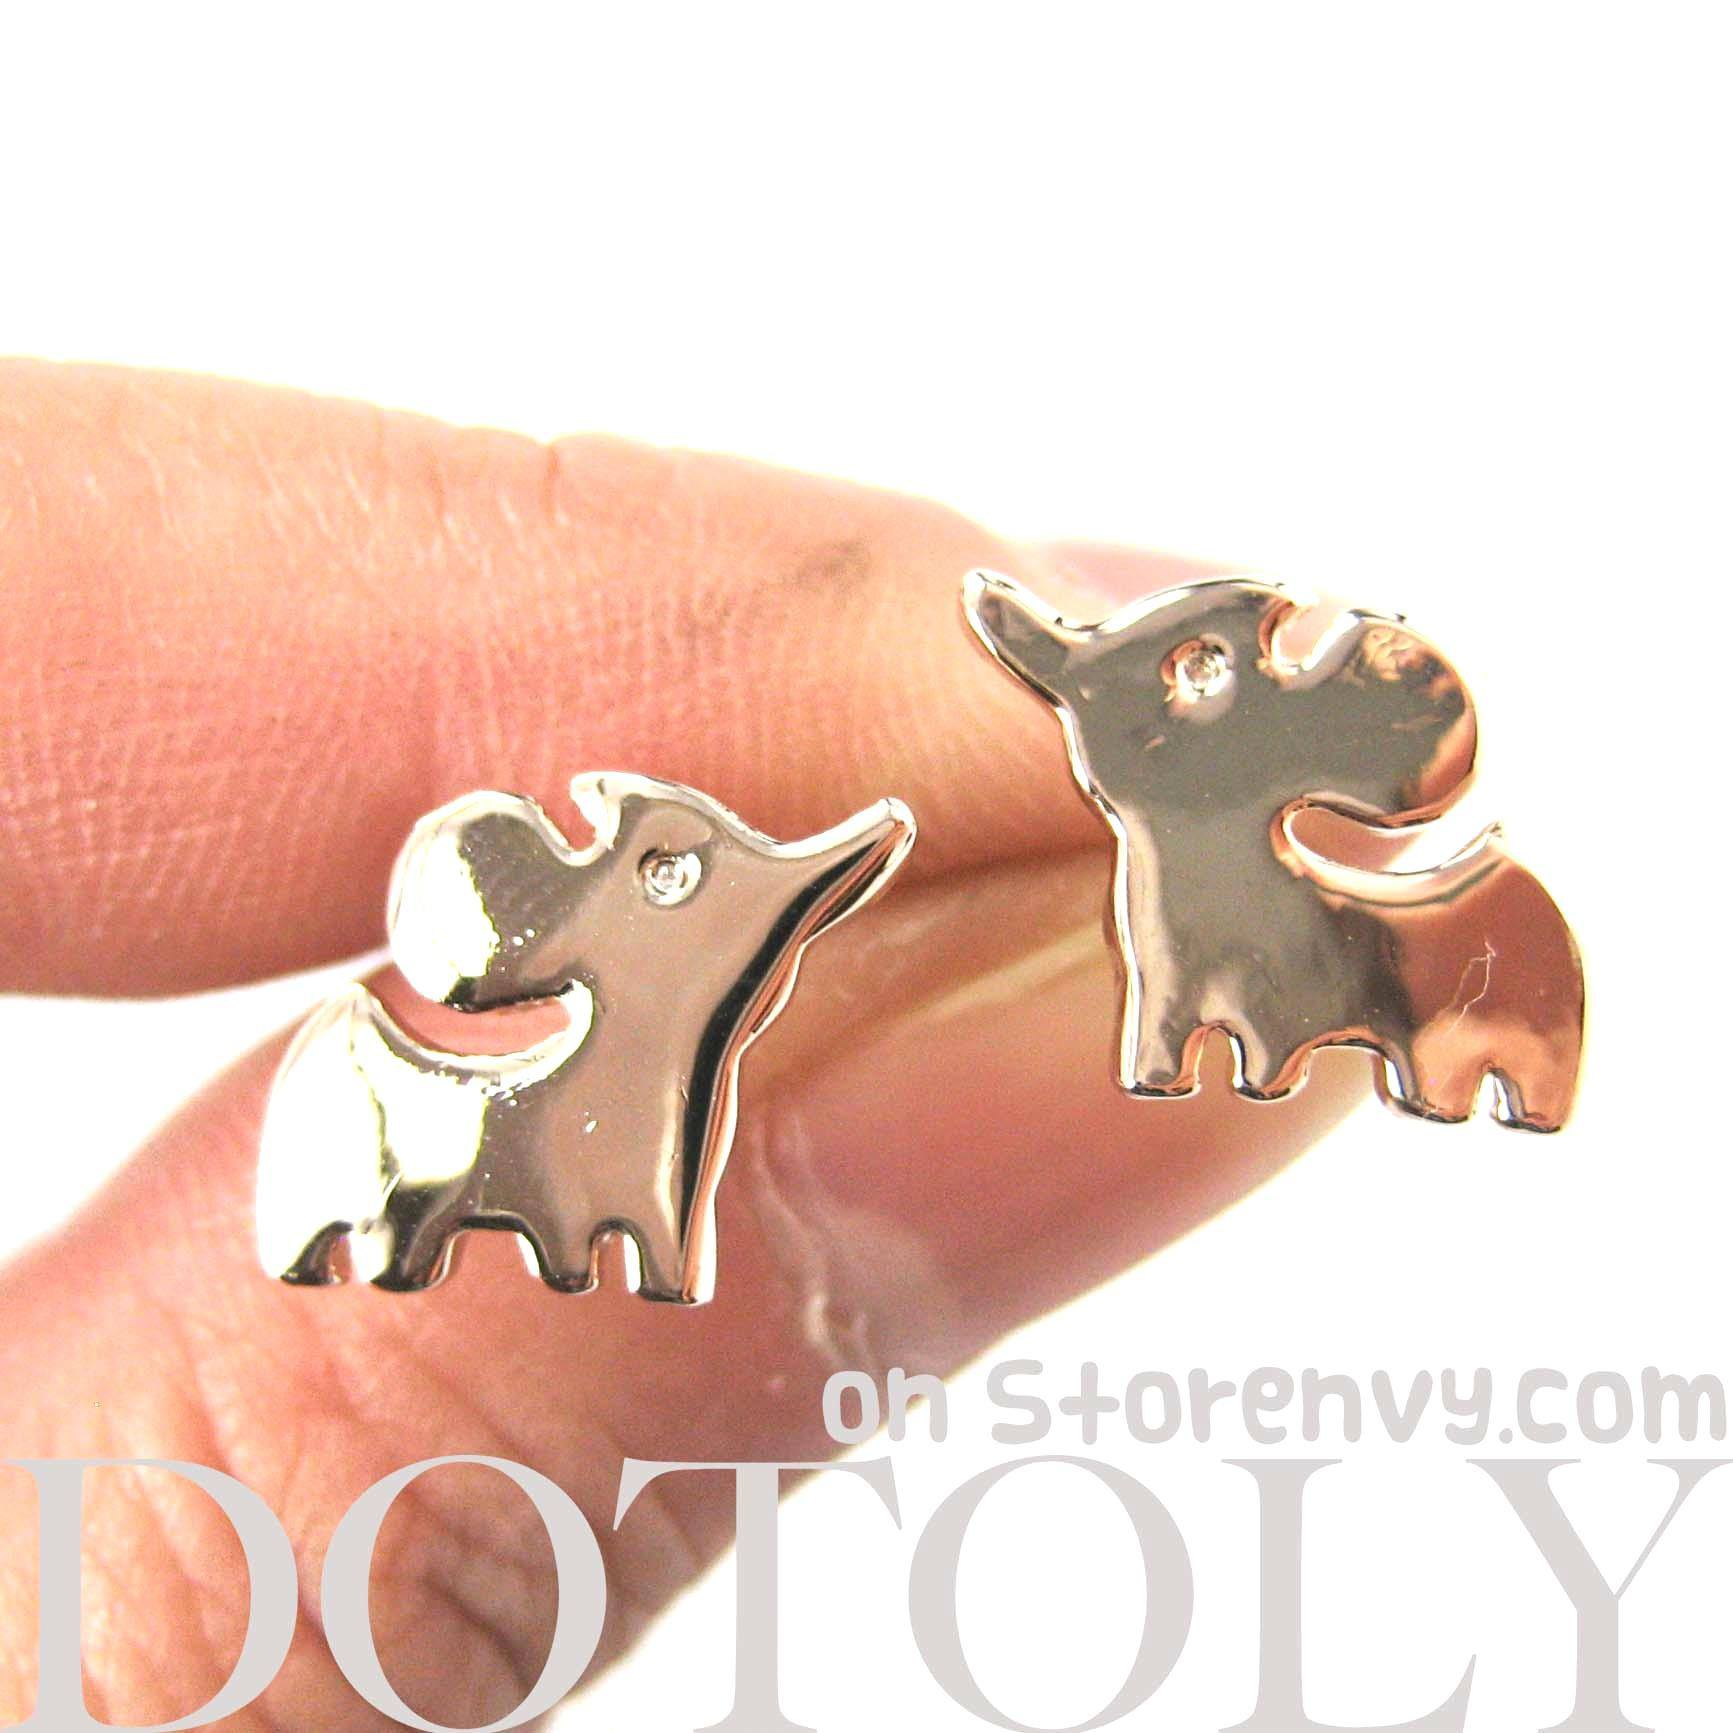 small-elephant-silhouette-animal-stud-earrings-in-rose-gold